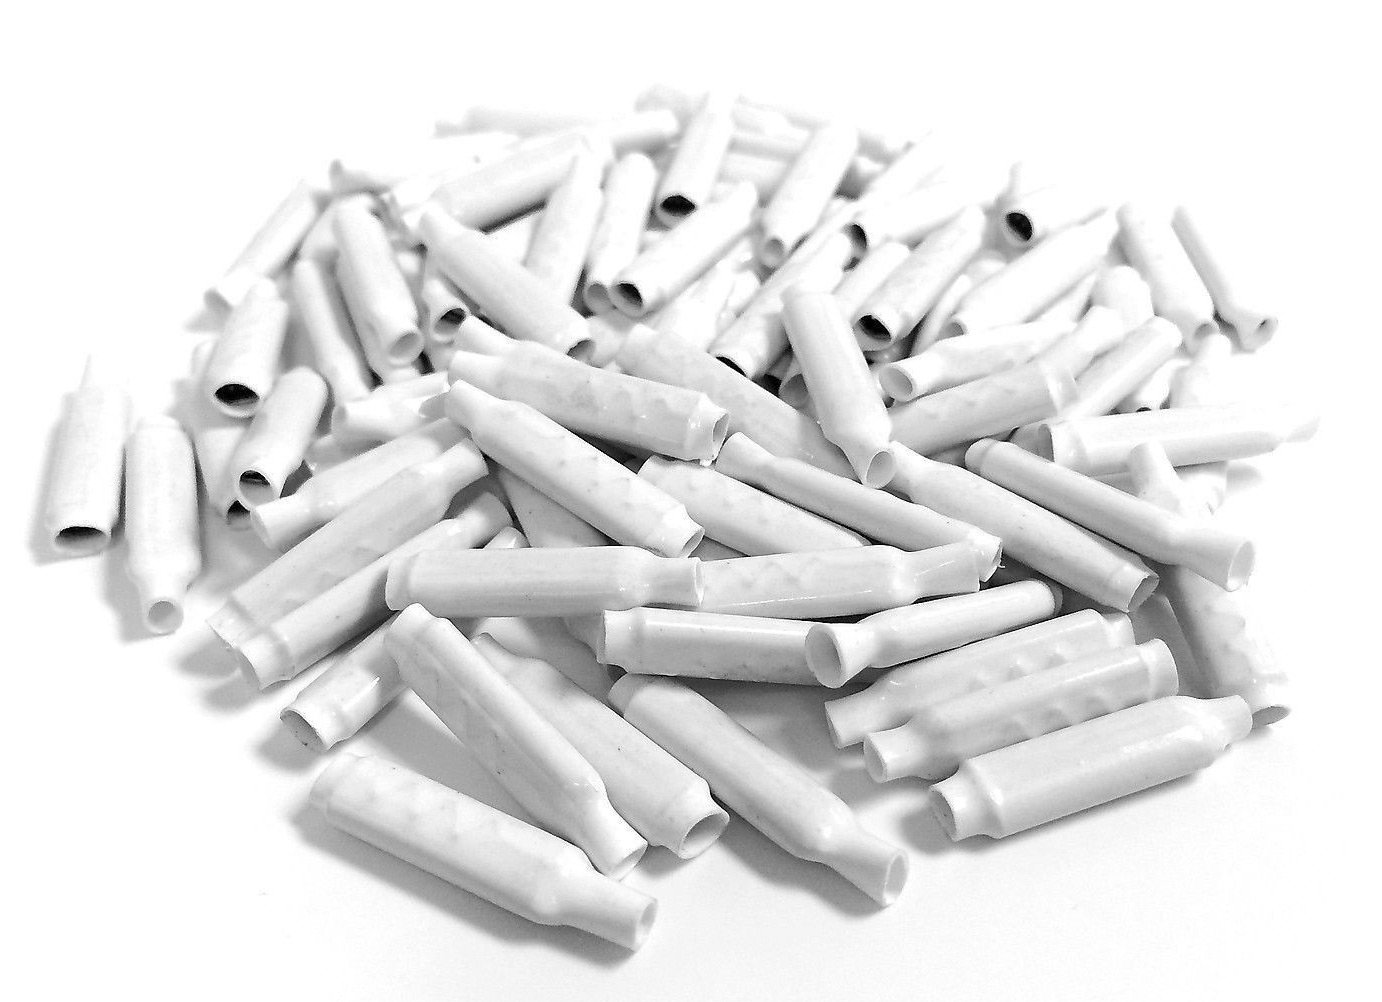 White B-Connector Wire Splices for Low Voltage (100 Pack) - - Amazon.com